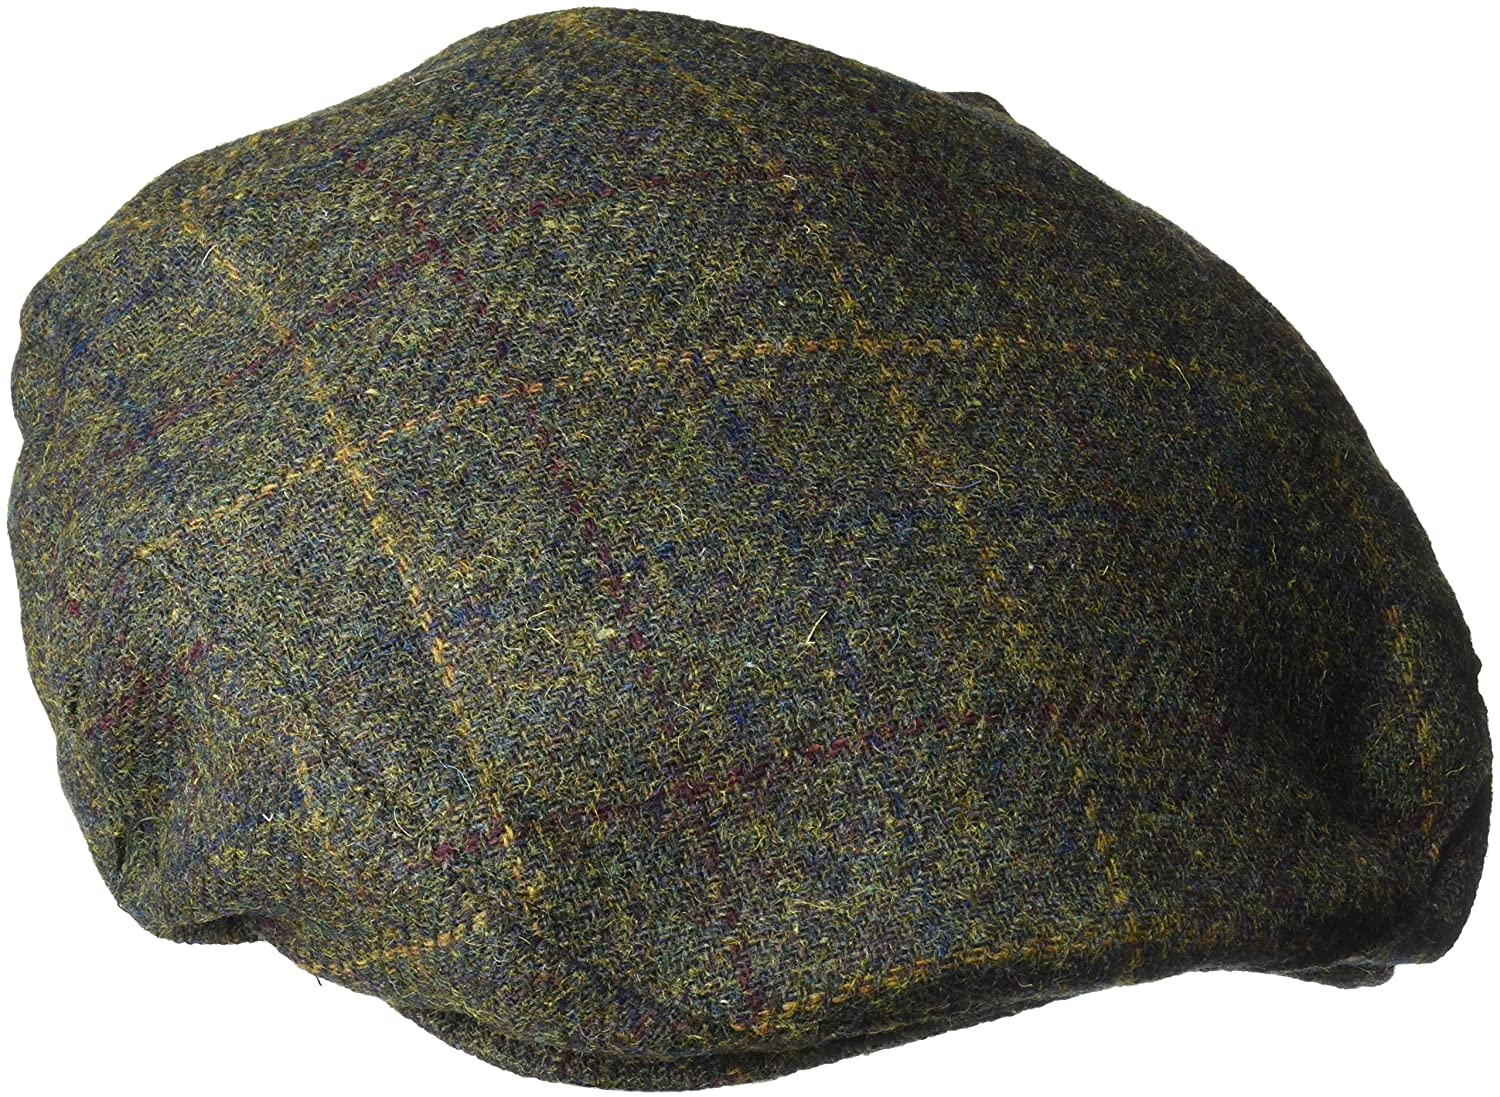 Henschel Mens Wool Blend Plaid Ivy Hat with Quilt Lining Henschel Headwear Child Code 4512